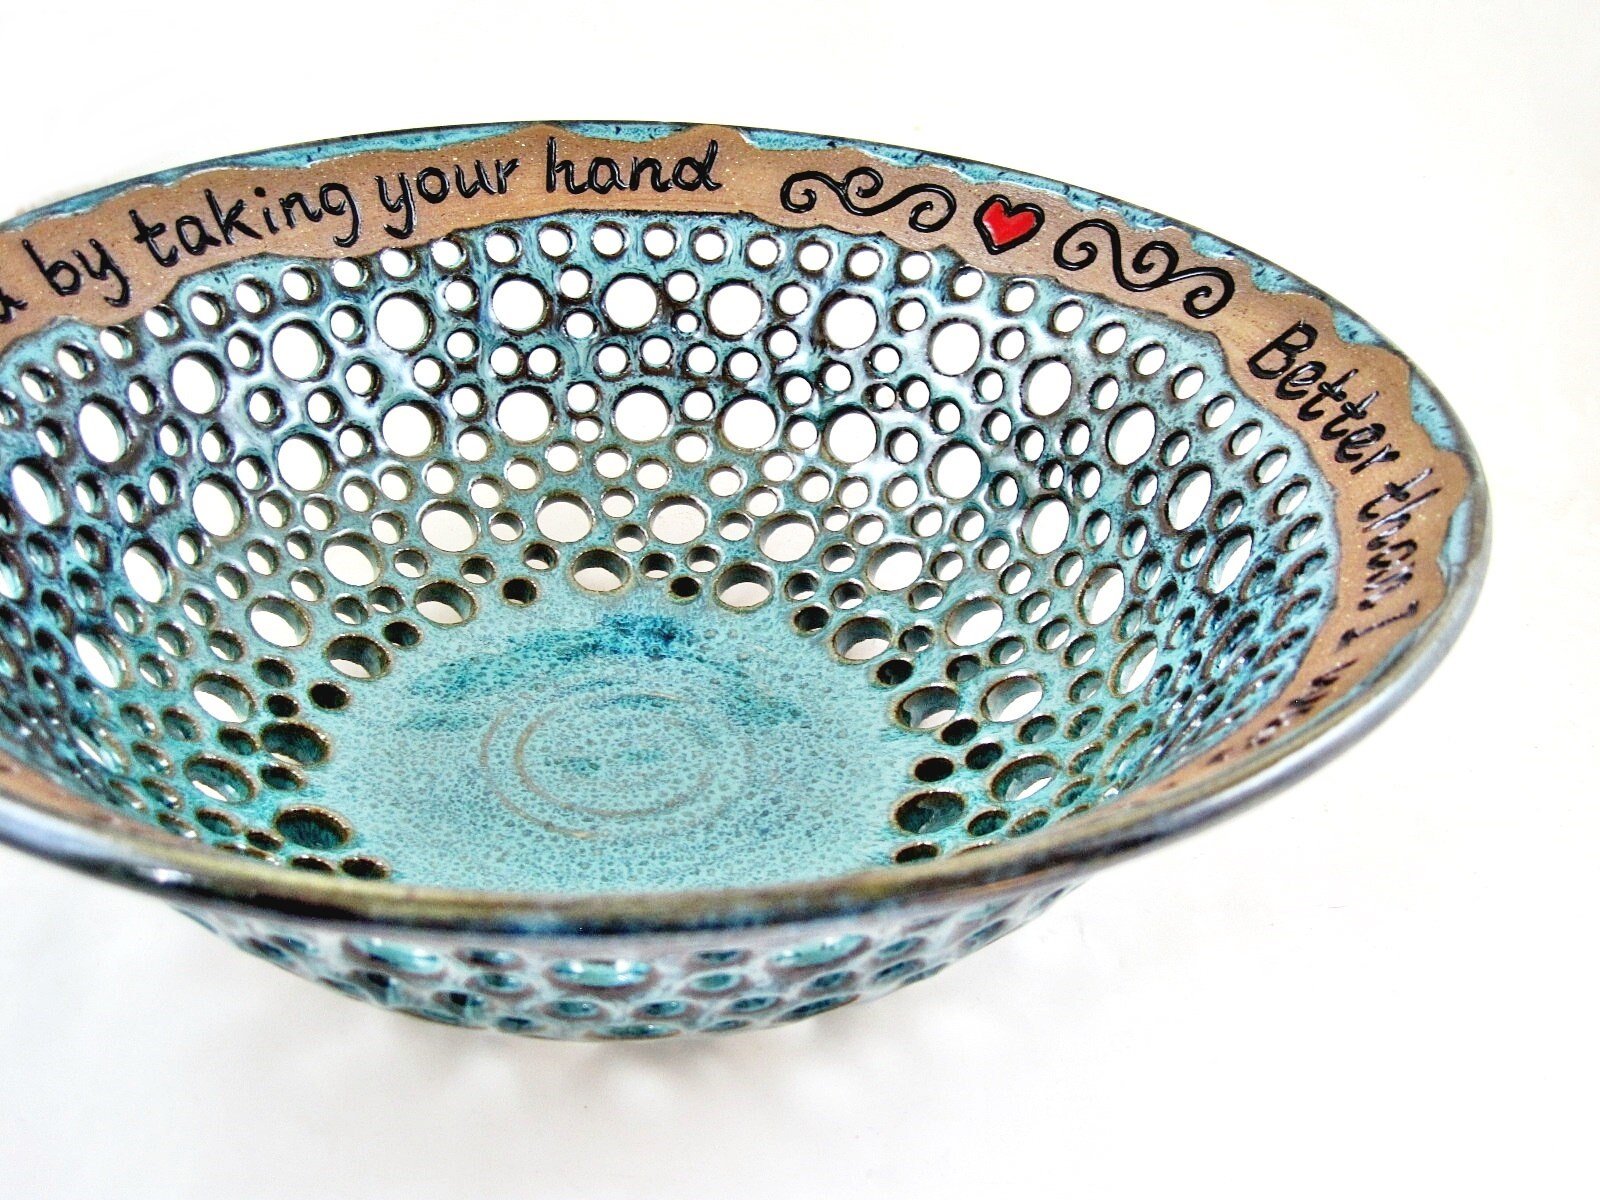 9th Anniversary Pottery For Wedding: Pottery 9th Anniversary Gift Pottery Fruit Bowl Wedding